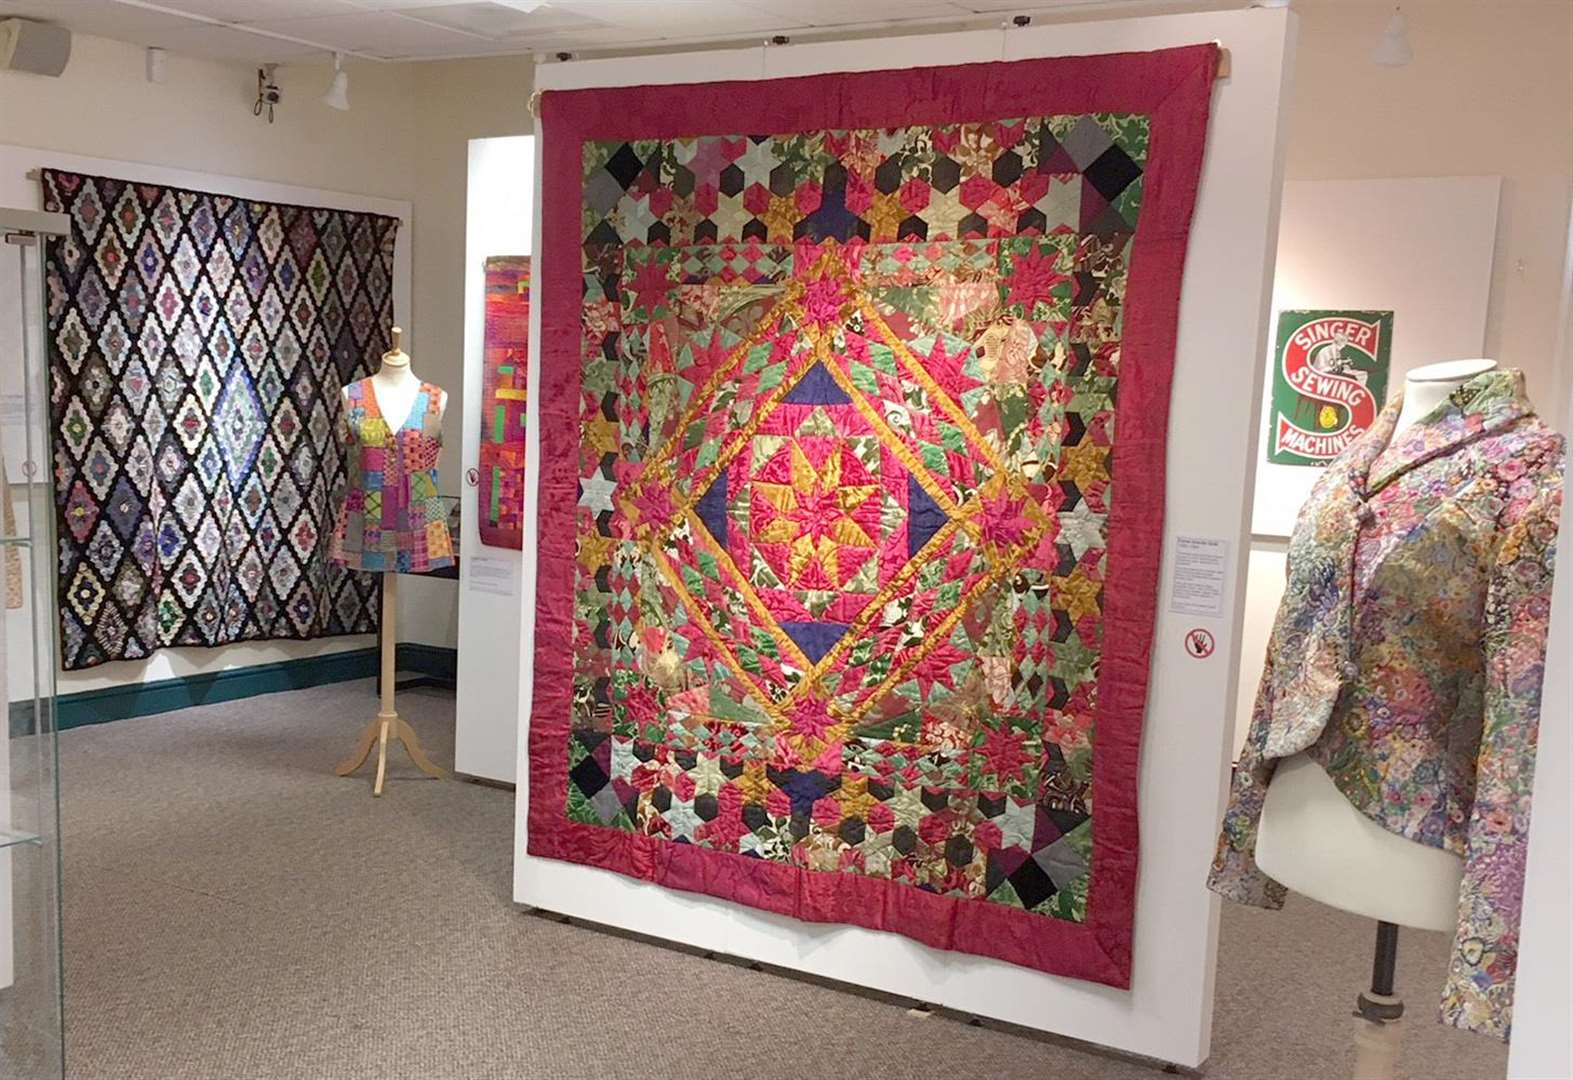 Museum-goers in stitches over patchwork exhibition